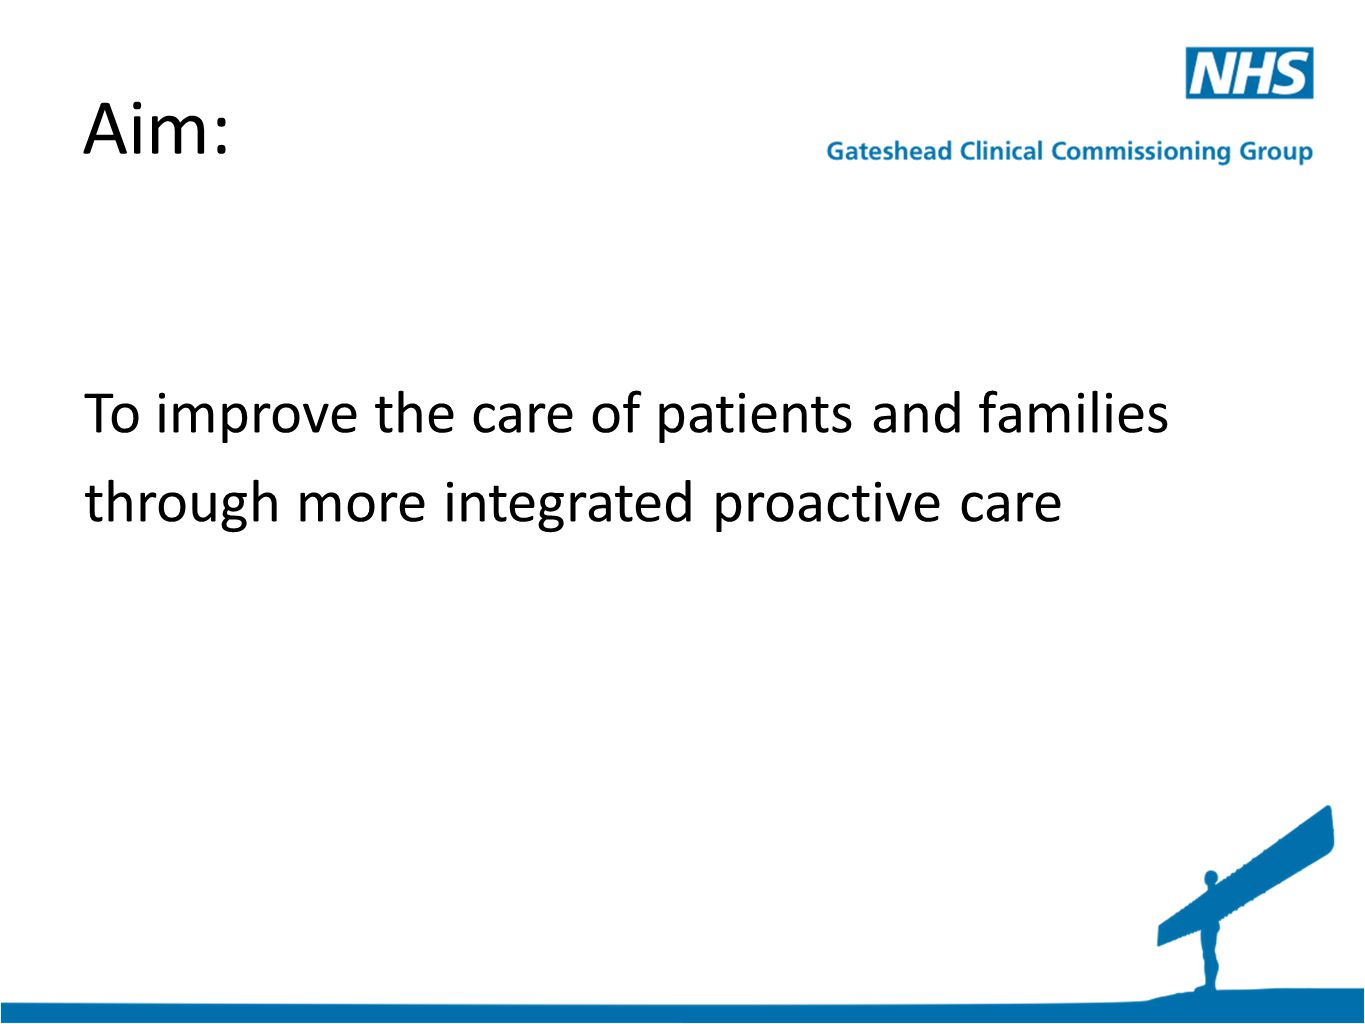 Aim: To improve the care of patients and families through more integrated proactive care